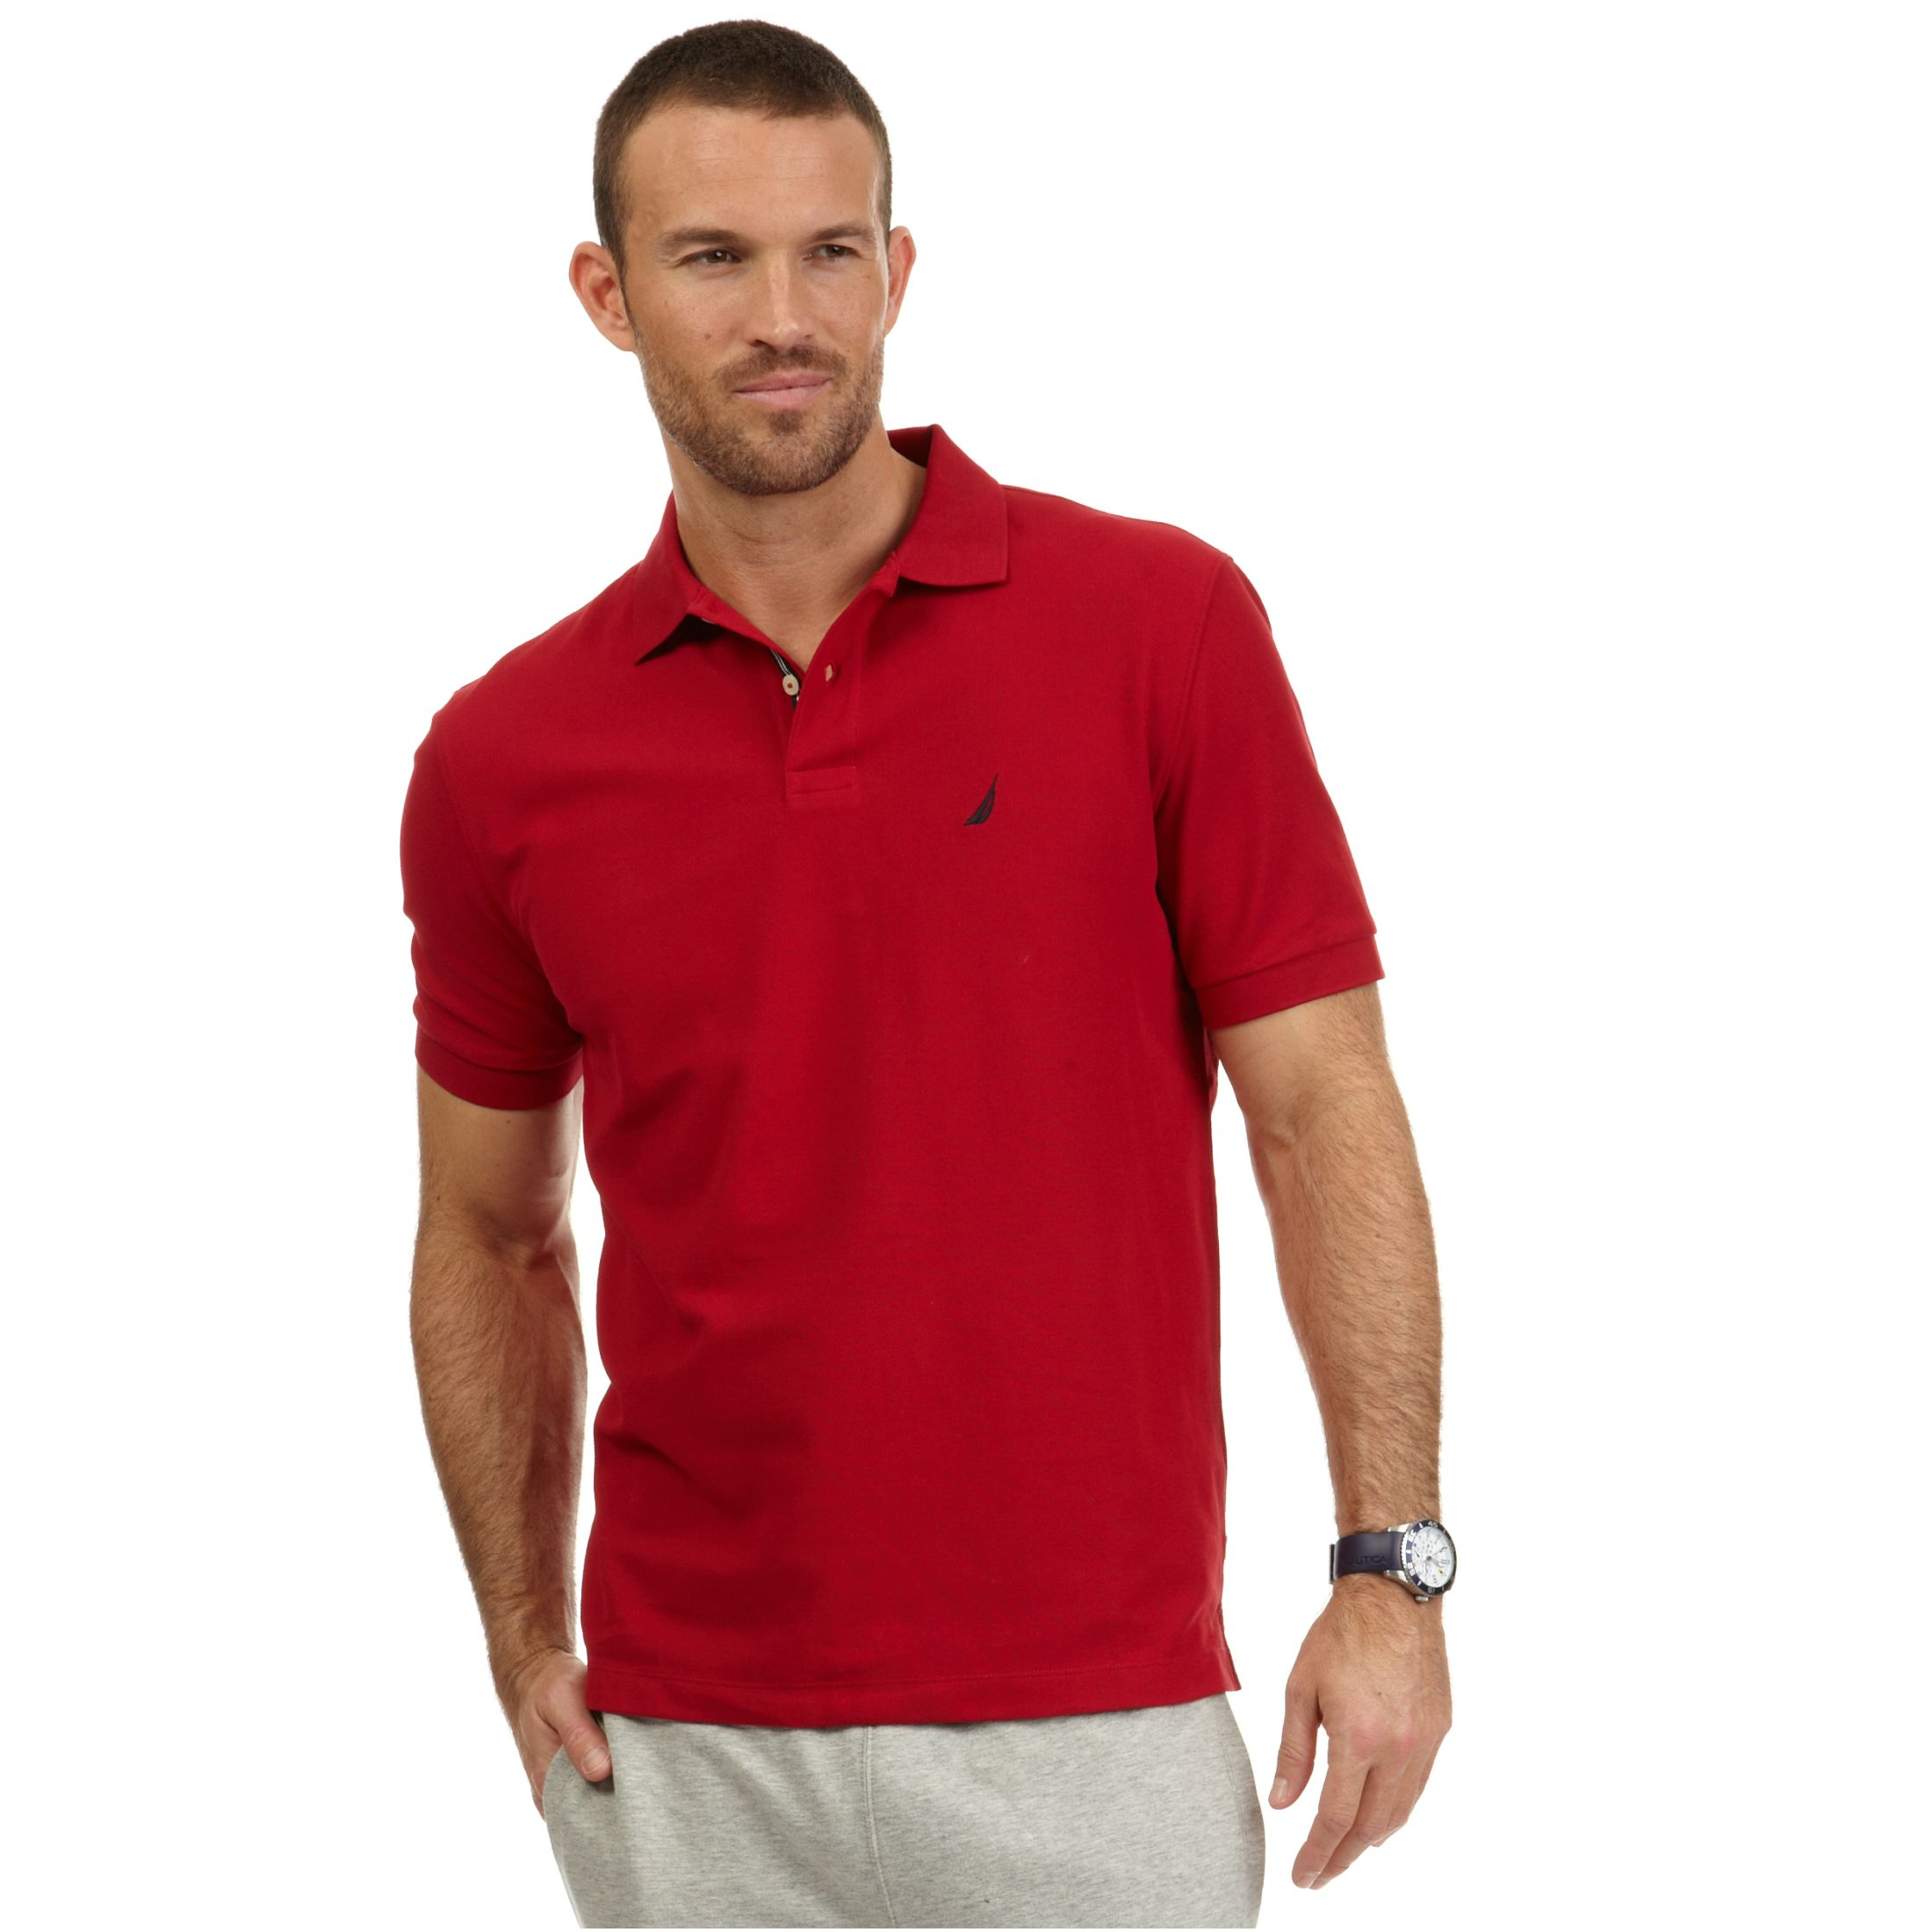 Polos for Men. For versatile additions to your everyday wardrobe, shop the full line of men's polos at Kohl's. From the clubhouse to the boardroom, polos for men are ideal for any occasion.